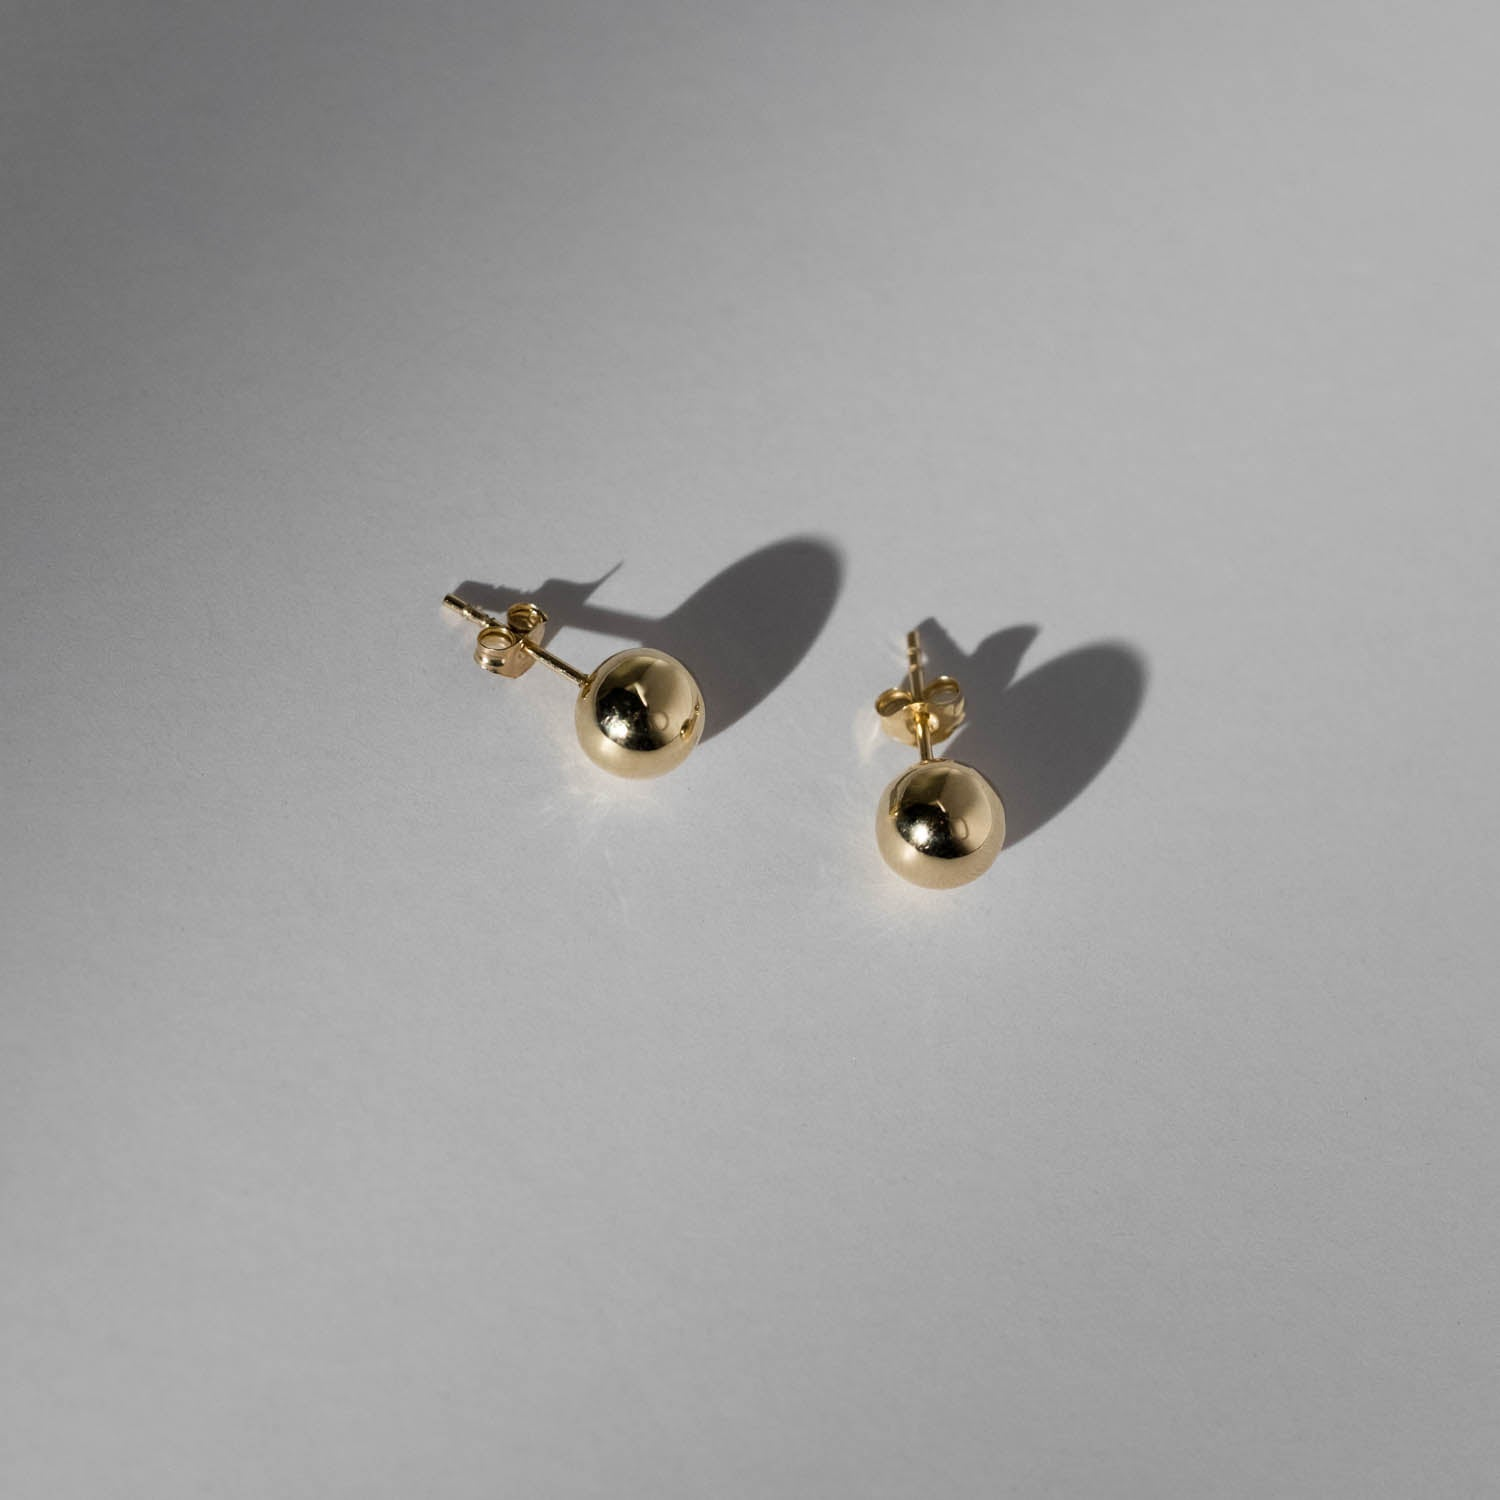 Tama Stud Earrings - 3